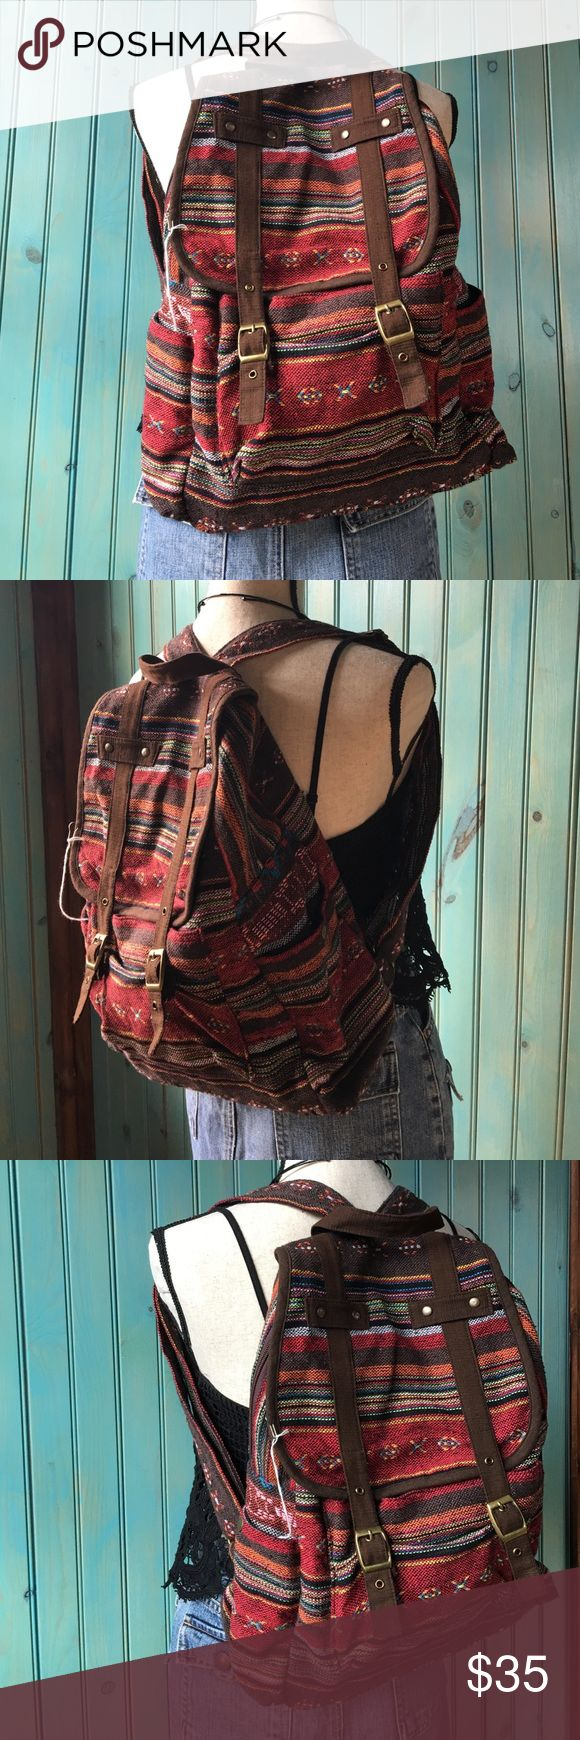 Hmong backpack Unique backpack good for gift  Bags Backpacks